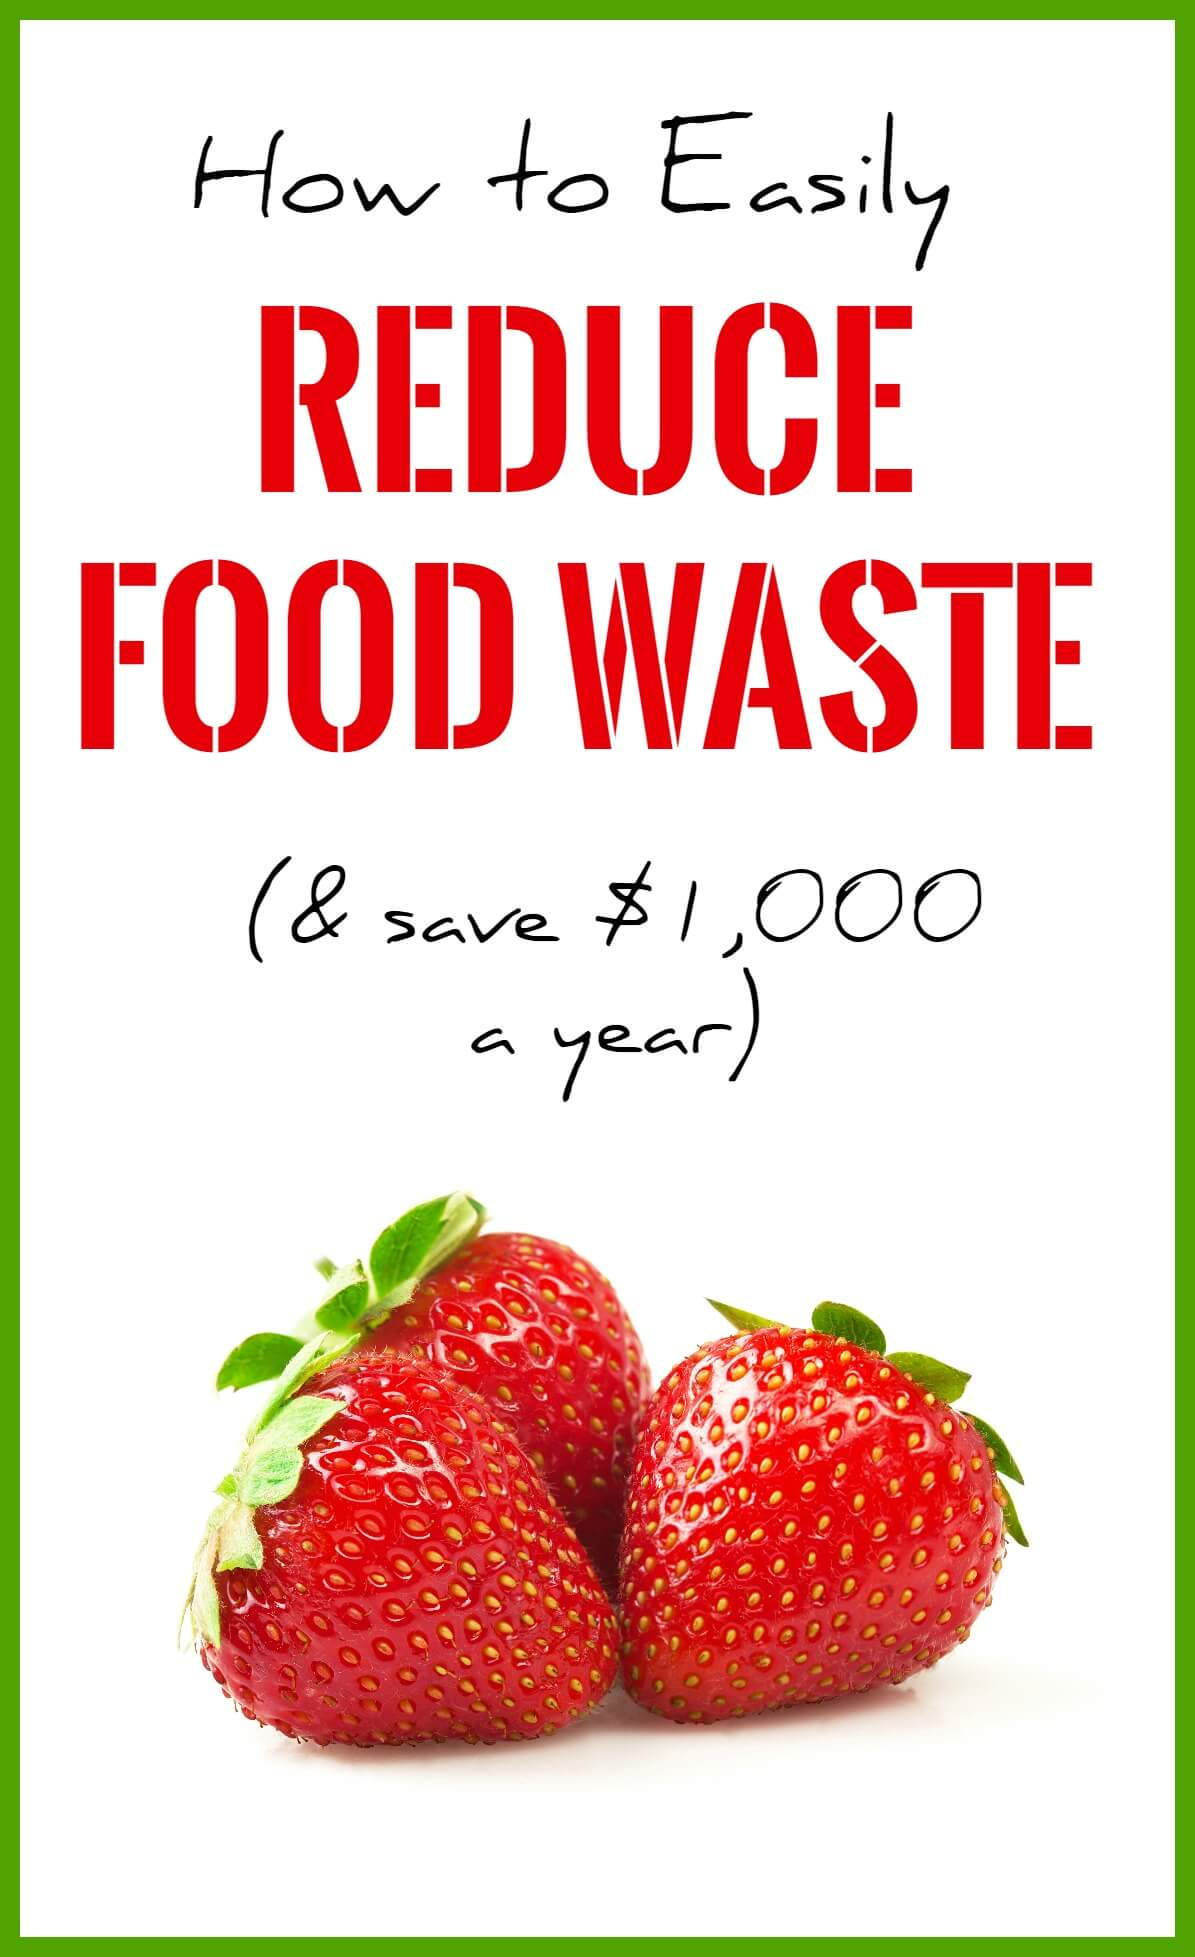 How to reduce food waste, save money and help the environment. This complete guide talks you through a whole host of options for throwing away less food, including instructions on how to freeze or dehydrate food, start a food journal and more.